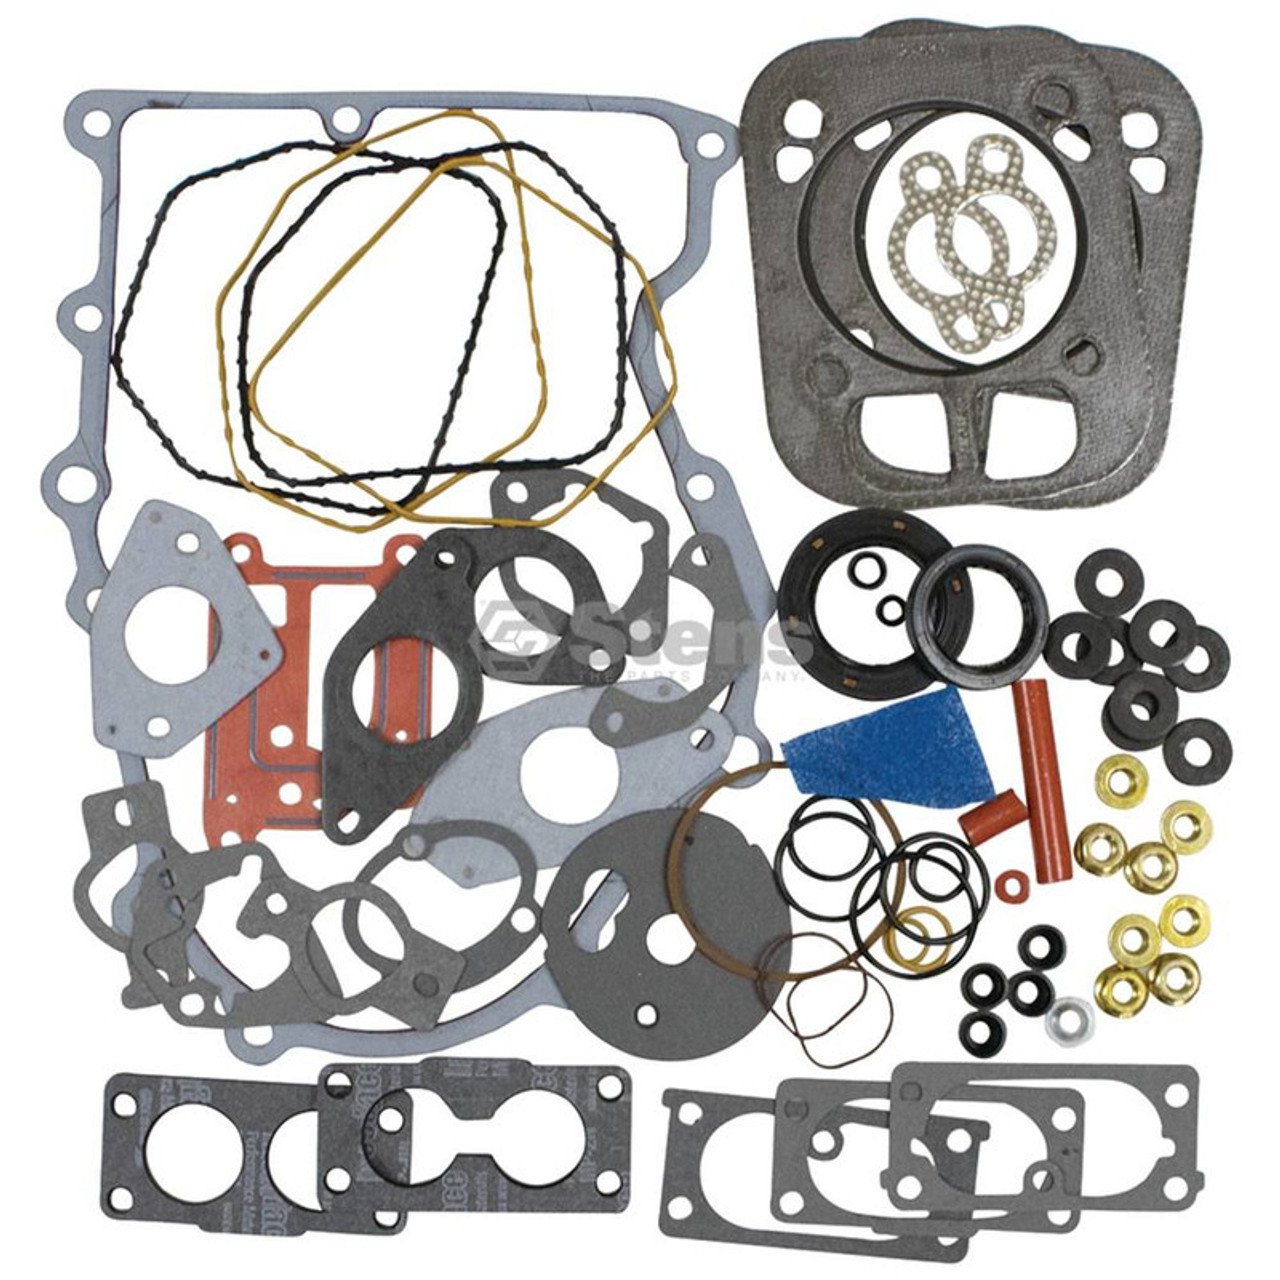 Engine Gasket Set for Kohler CH25, CH730, CH740, CH750, CV25, 24755113, 24755113S, 24755158, 24755207, 24755207S, 24755208, 24755208S, 5475523, 5475523S